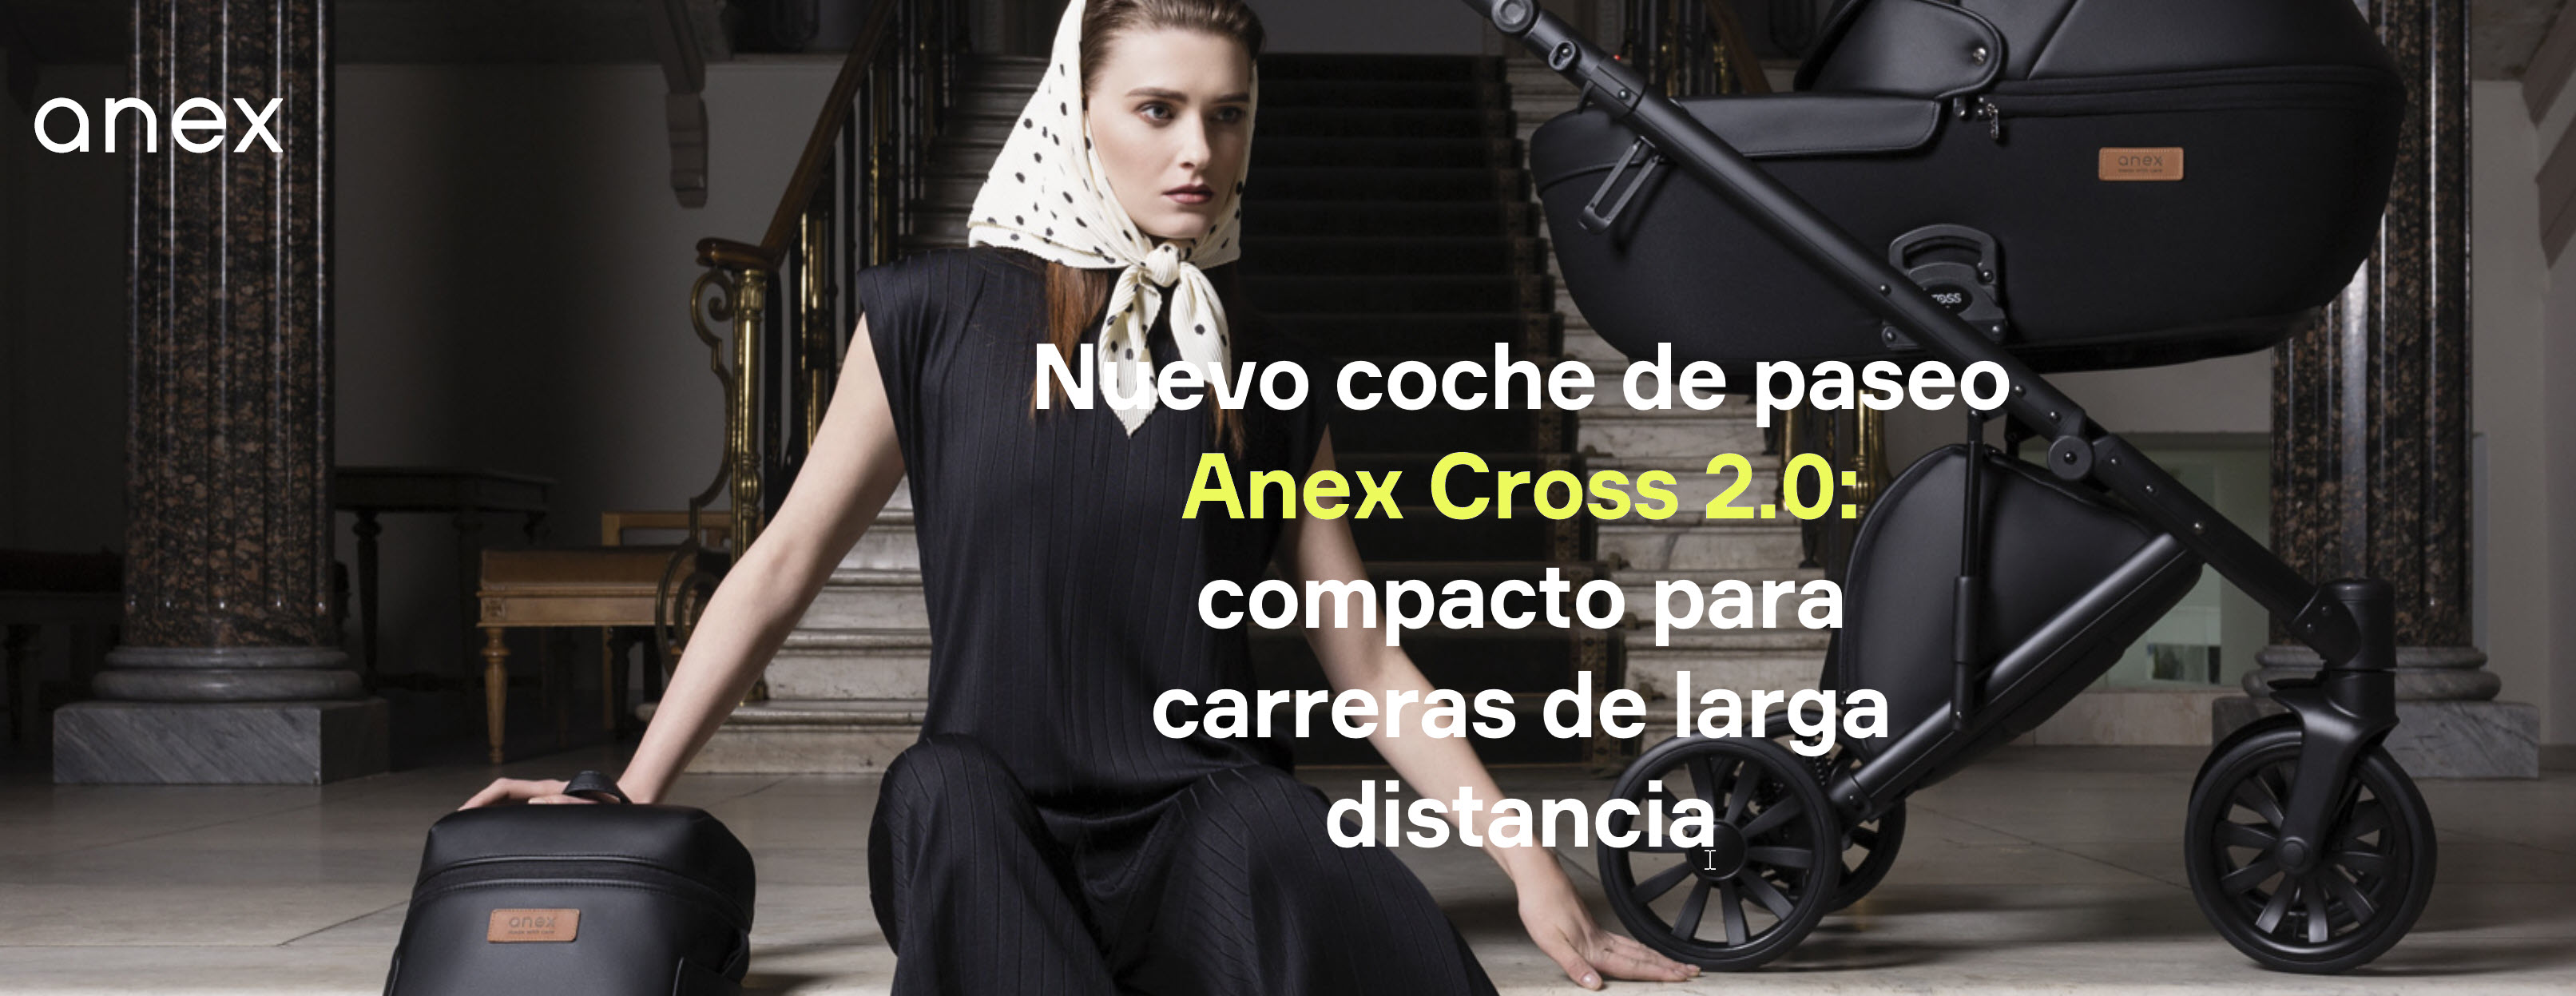 ANEX CROSS 2.0